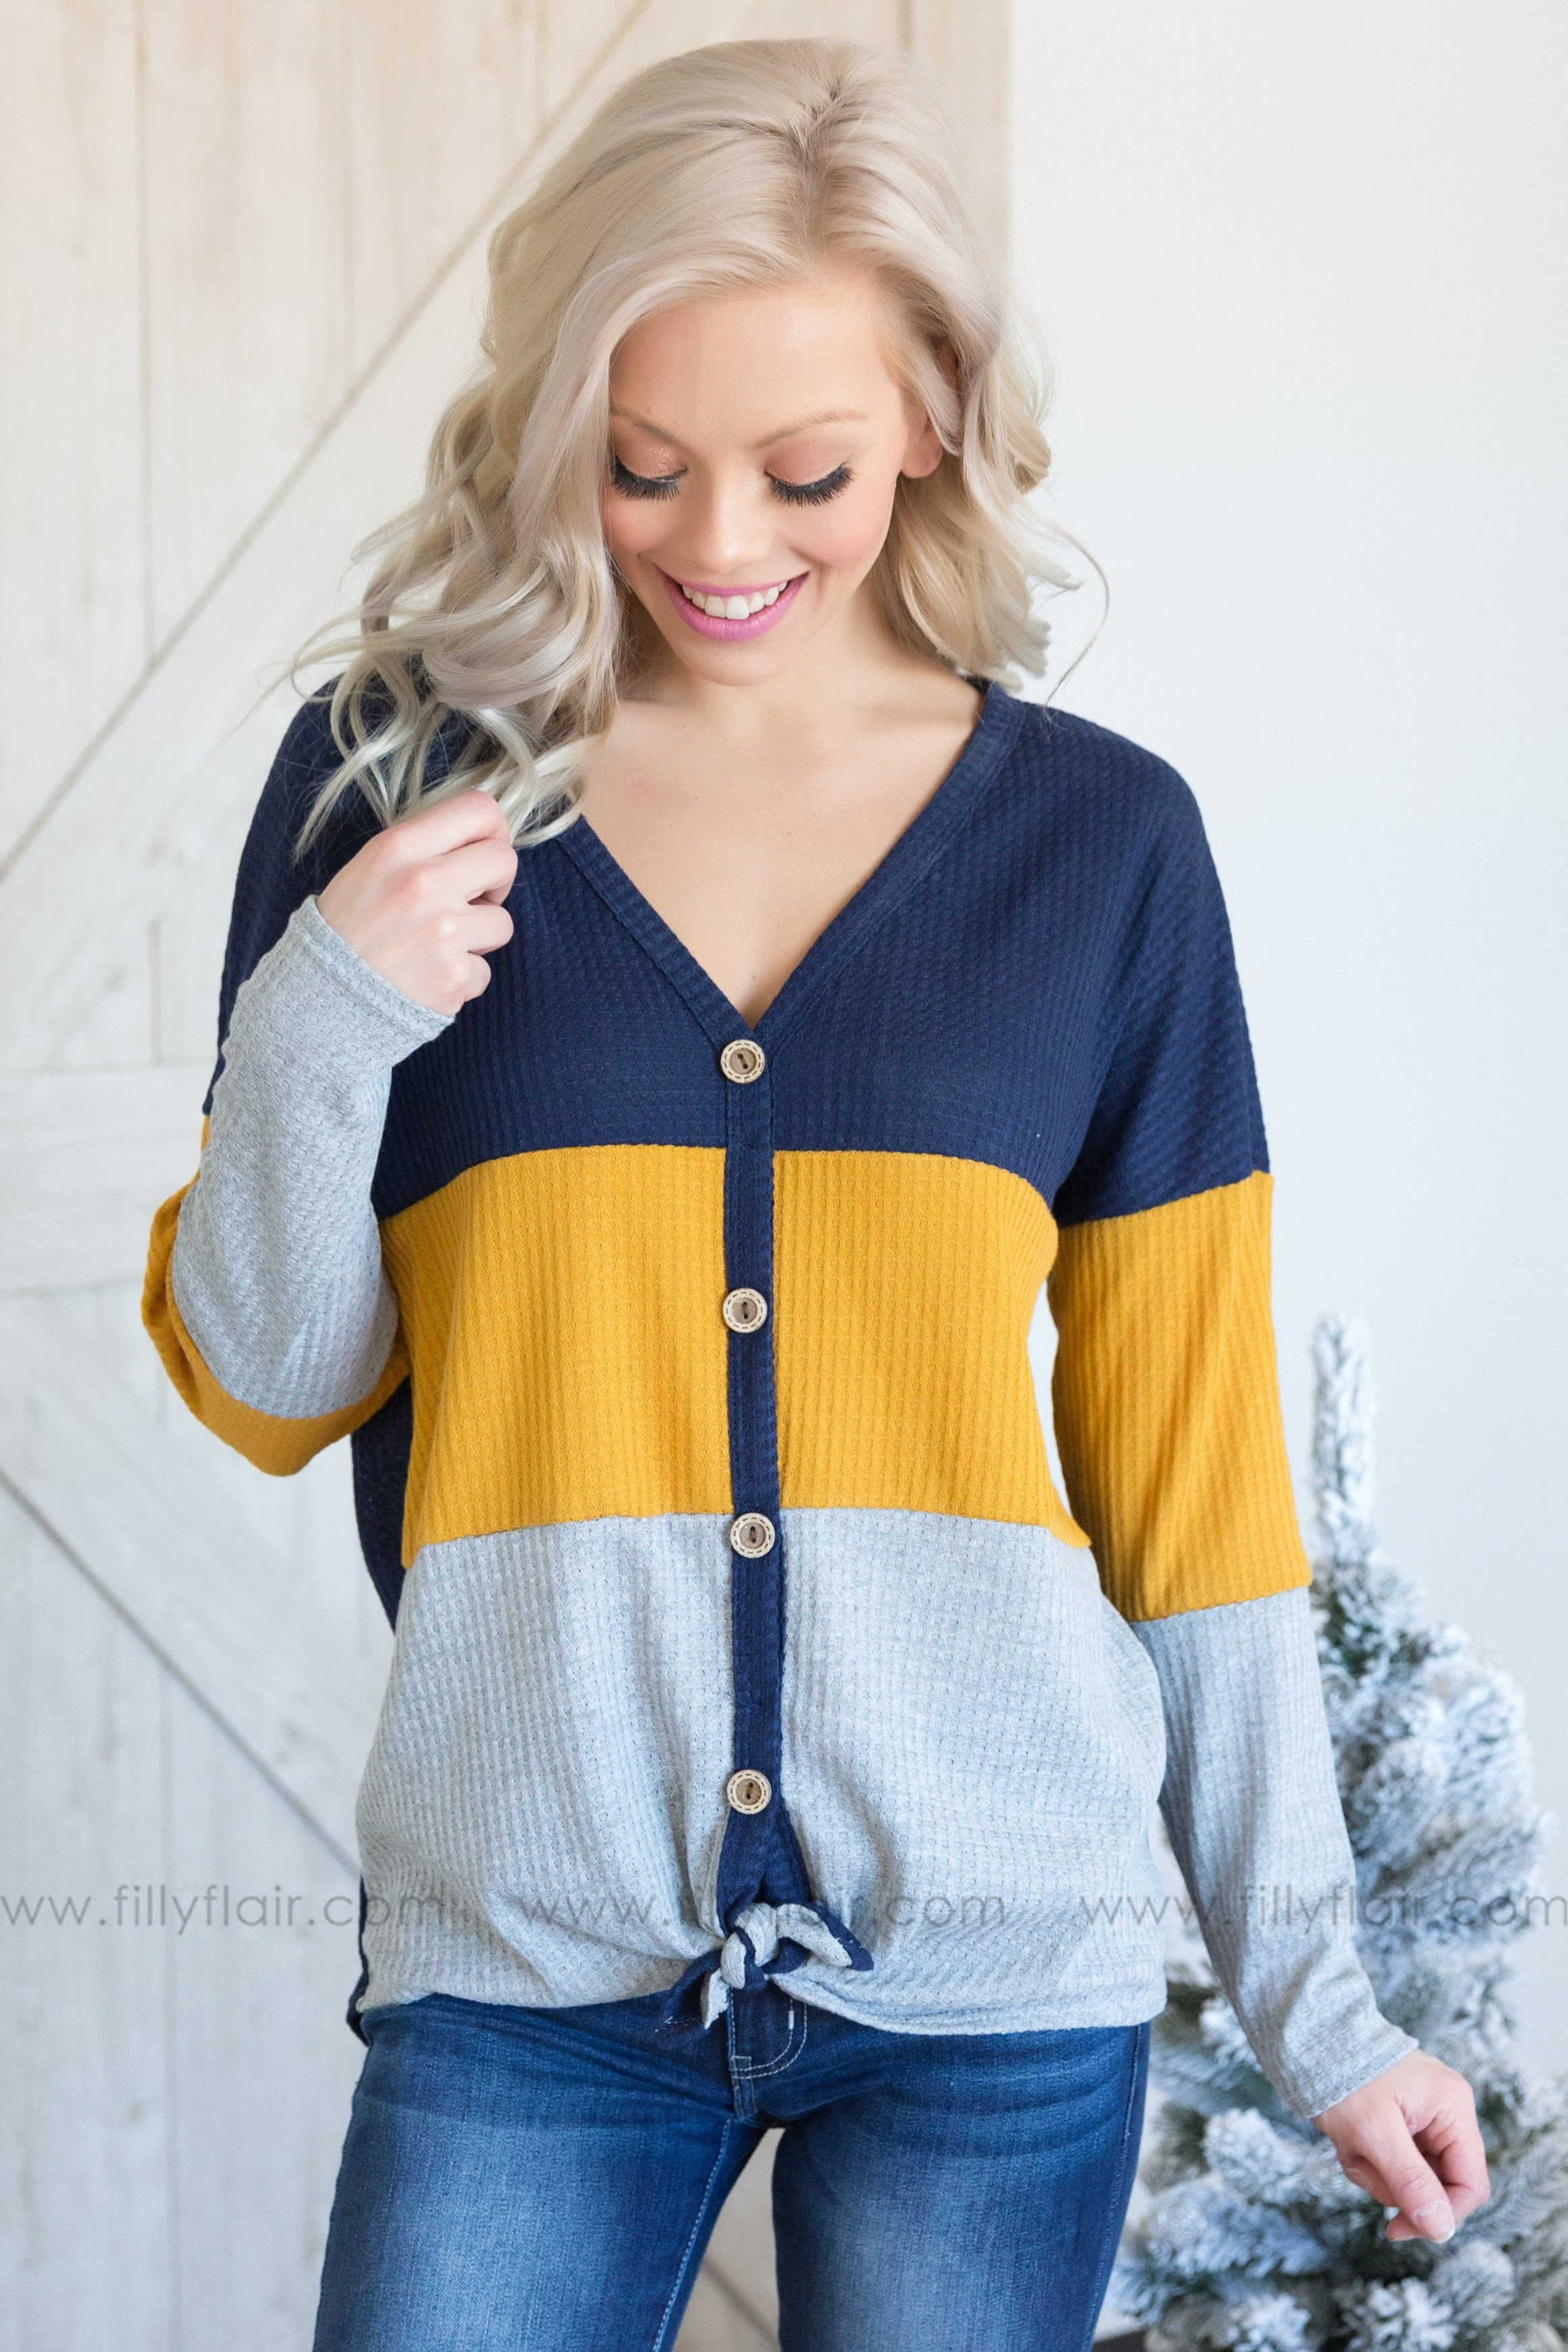 Easy Going Long Sleeve Color Block Waffle Tie Top in Navy Mustard - Filly Flair